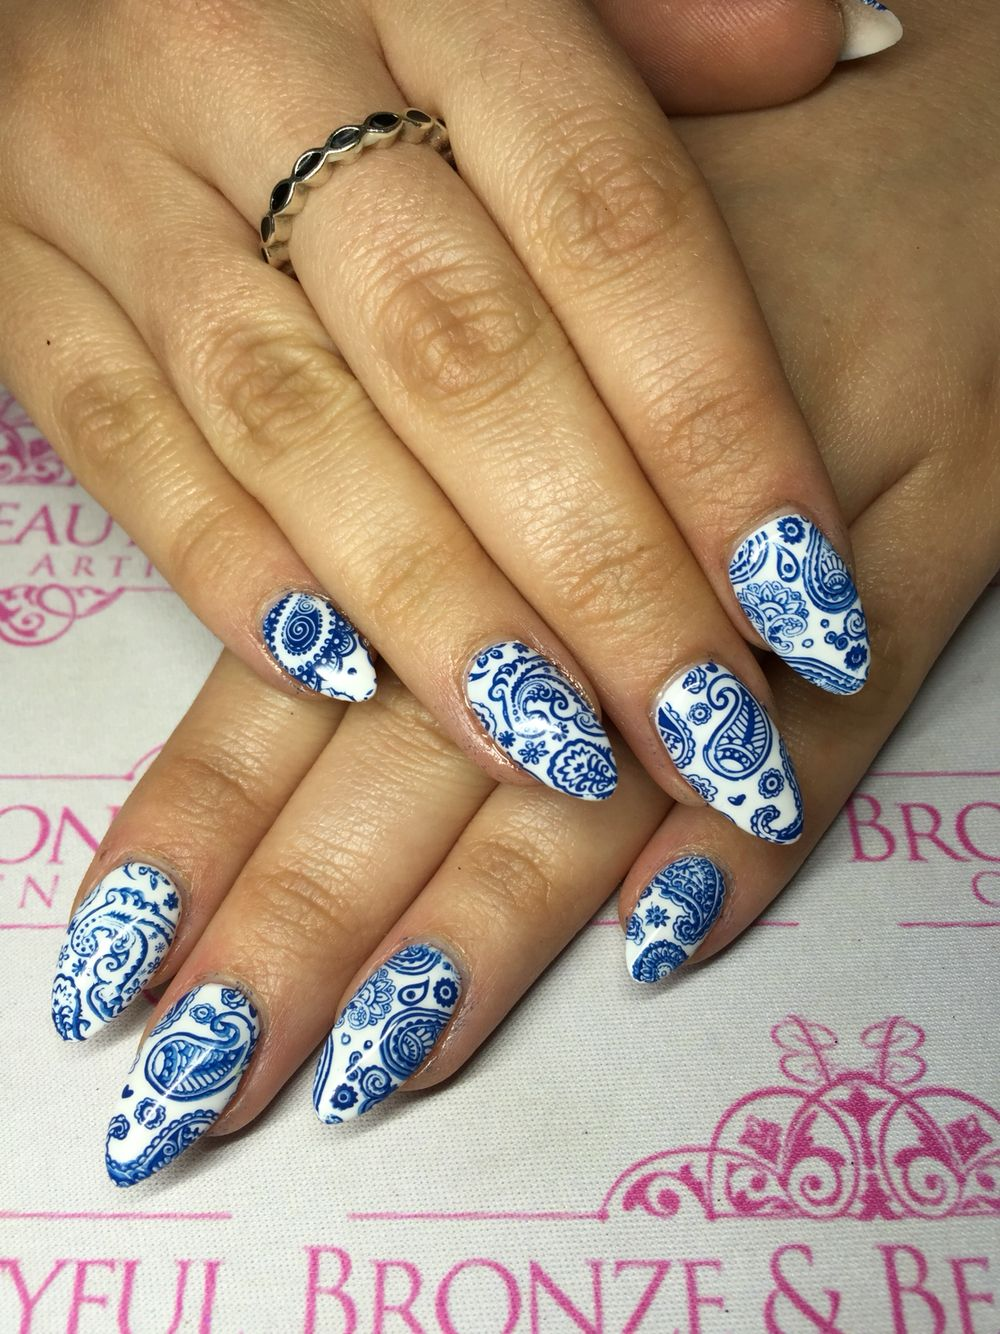 Paisley Moyou Stamping Teacup Porcelain Pottery Nails Nails